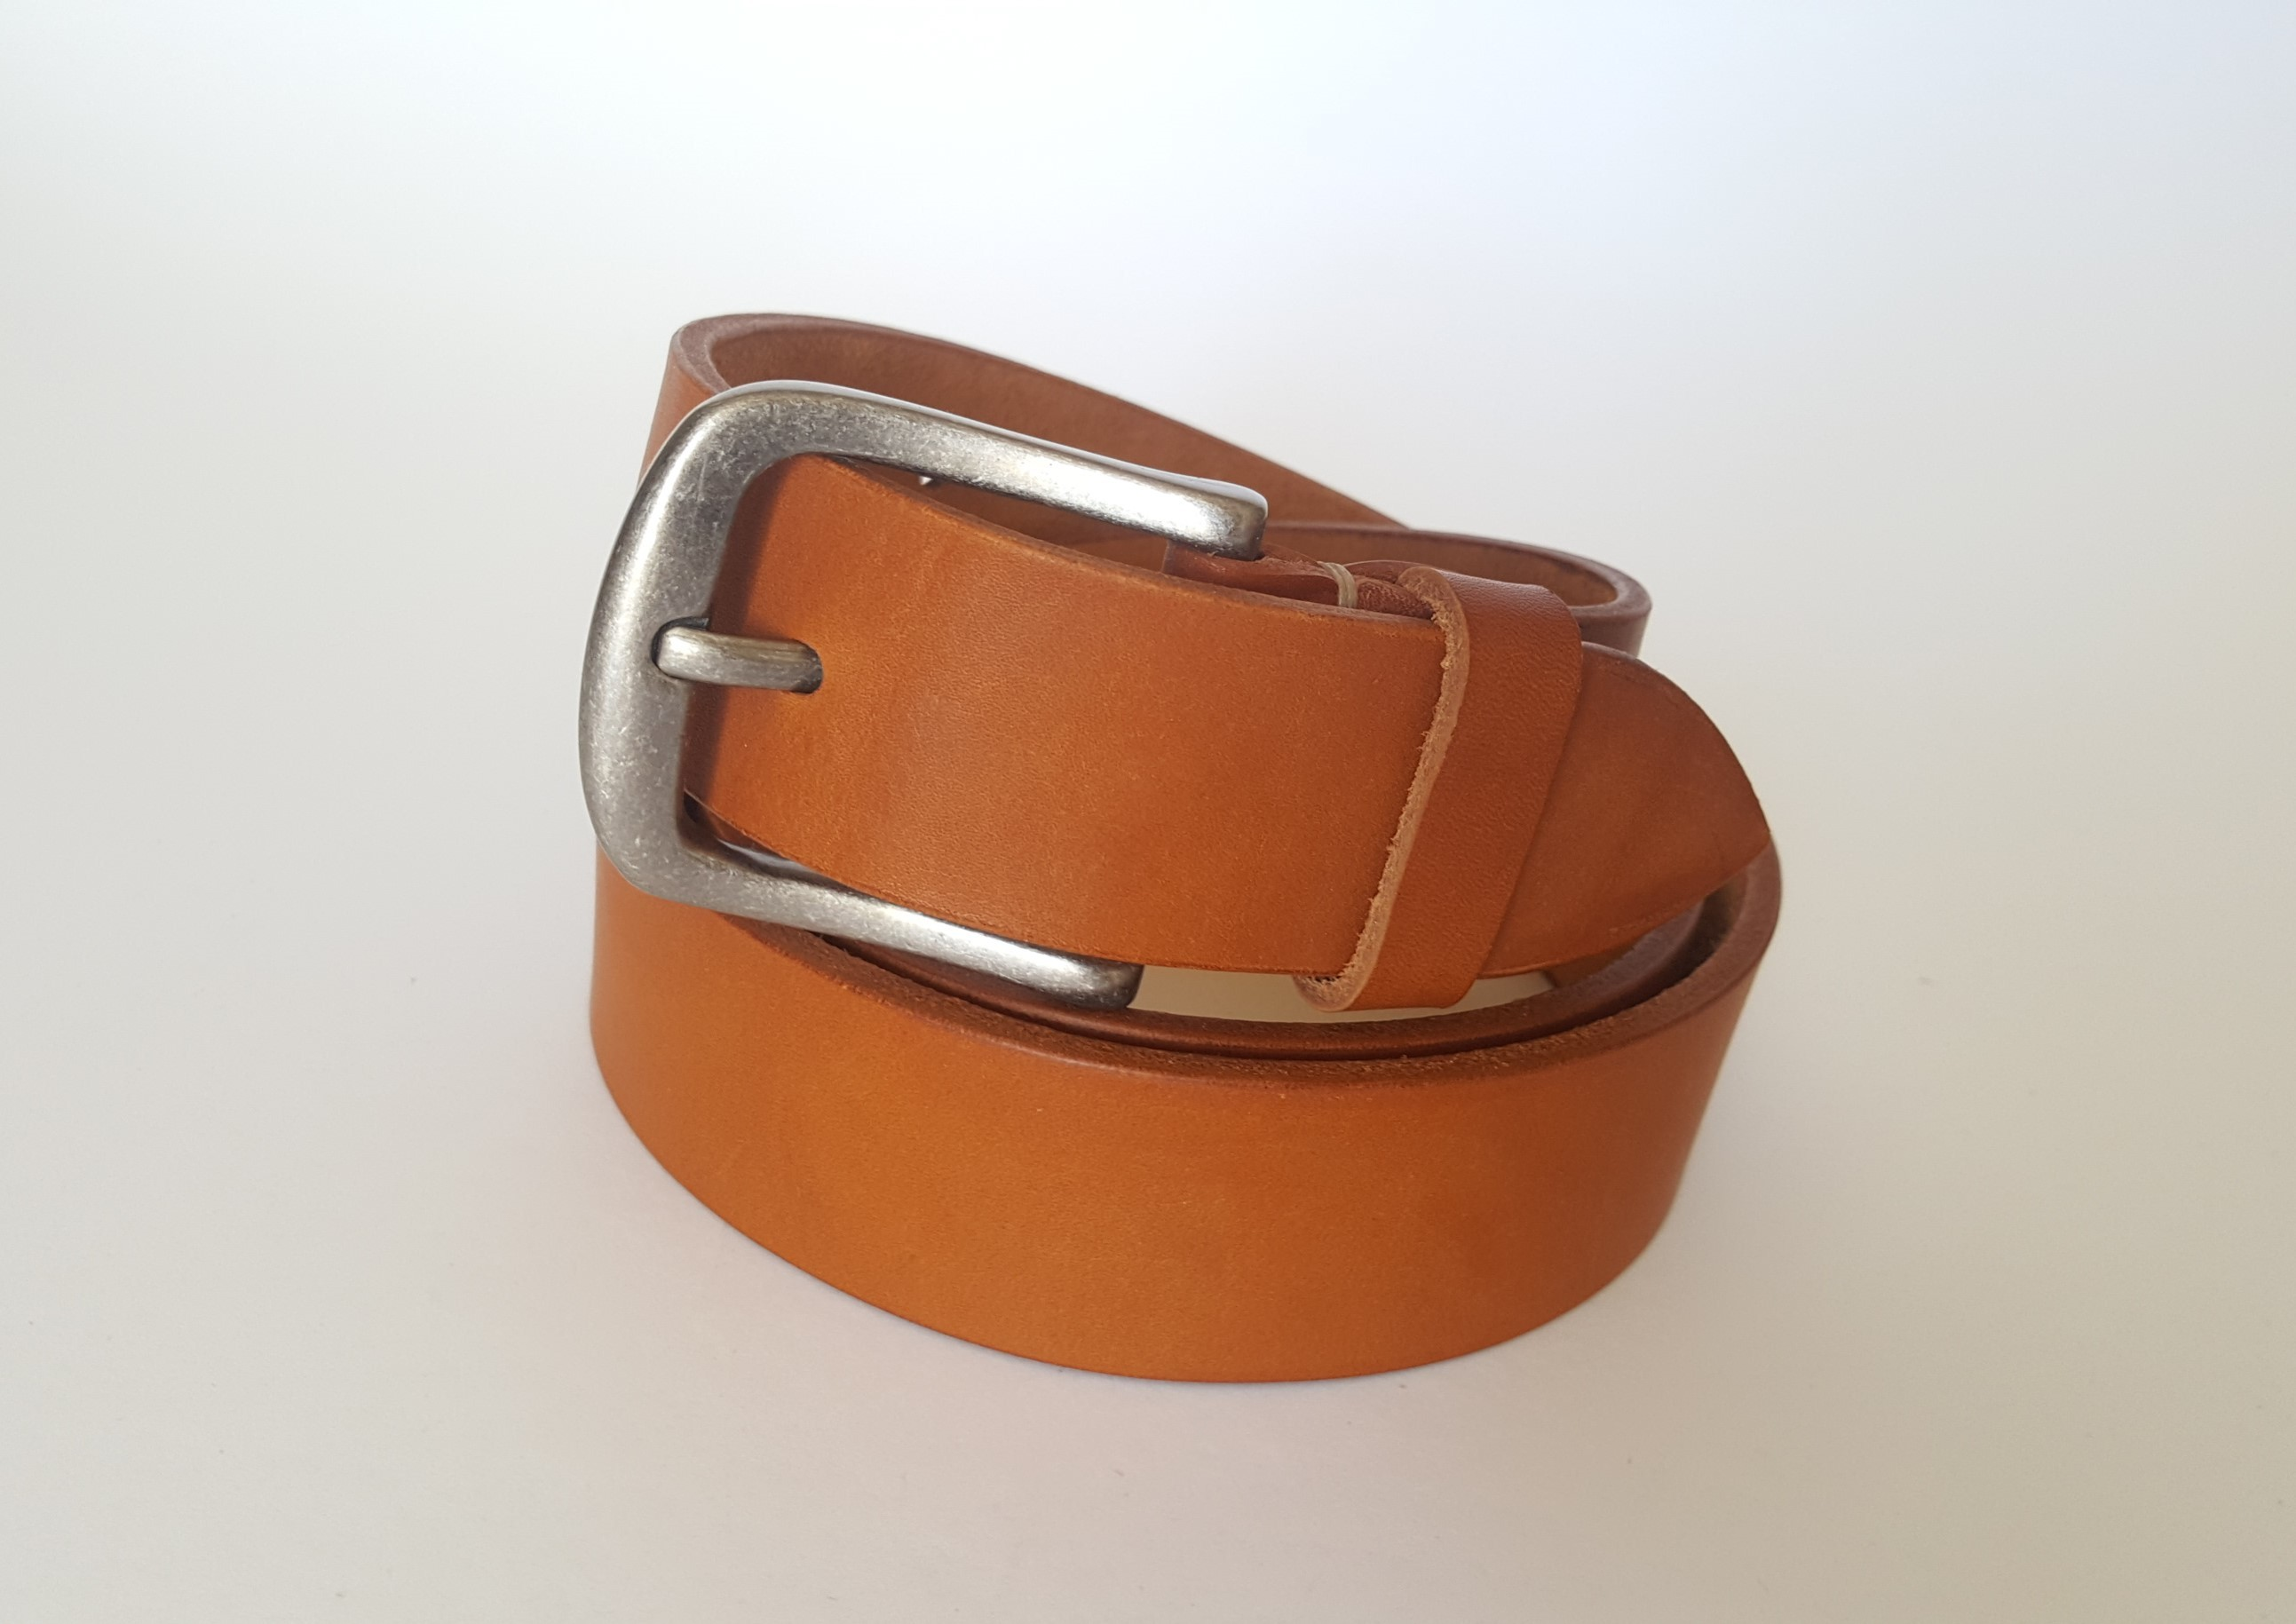 This beautiful and stylish accessory has so much character in the natural veg tanned genuine leather. 